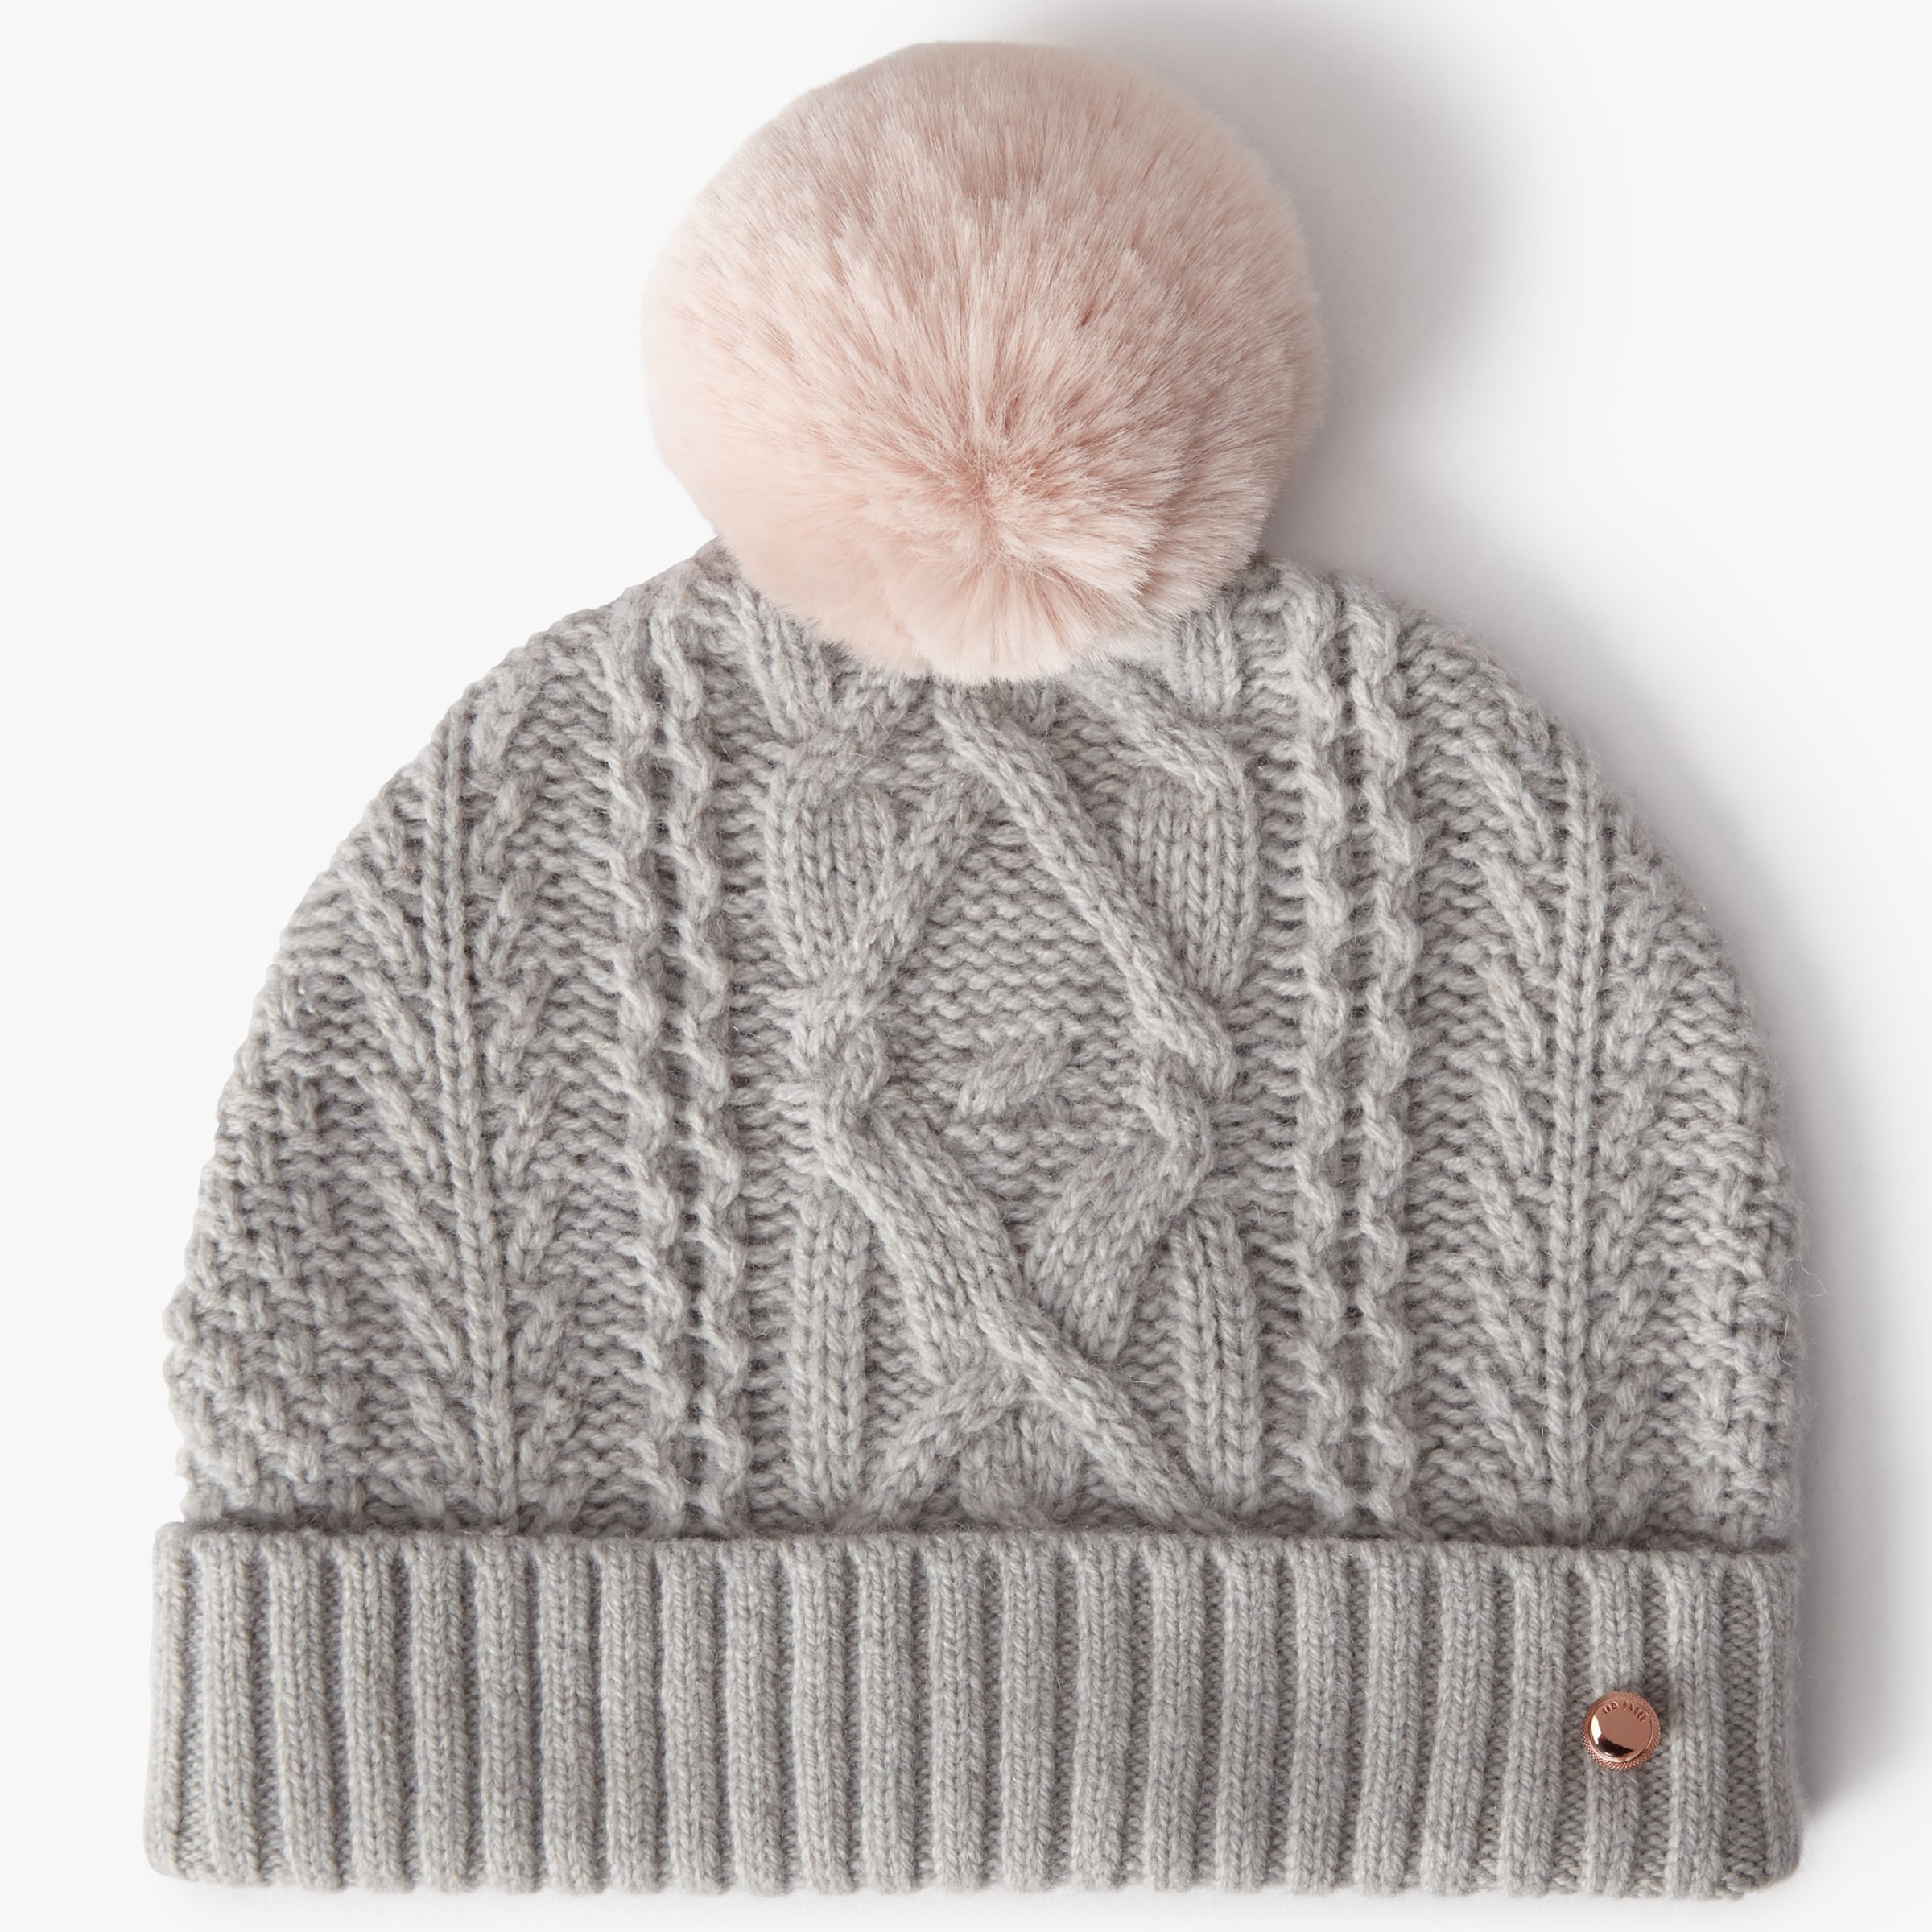 Ted Baker Wool Blend Cable Knit Faux Fur Pom Pom Beanie Hat 3099ca4bc90f